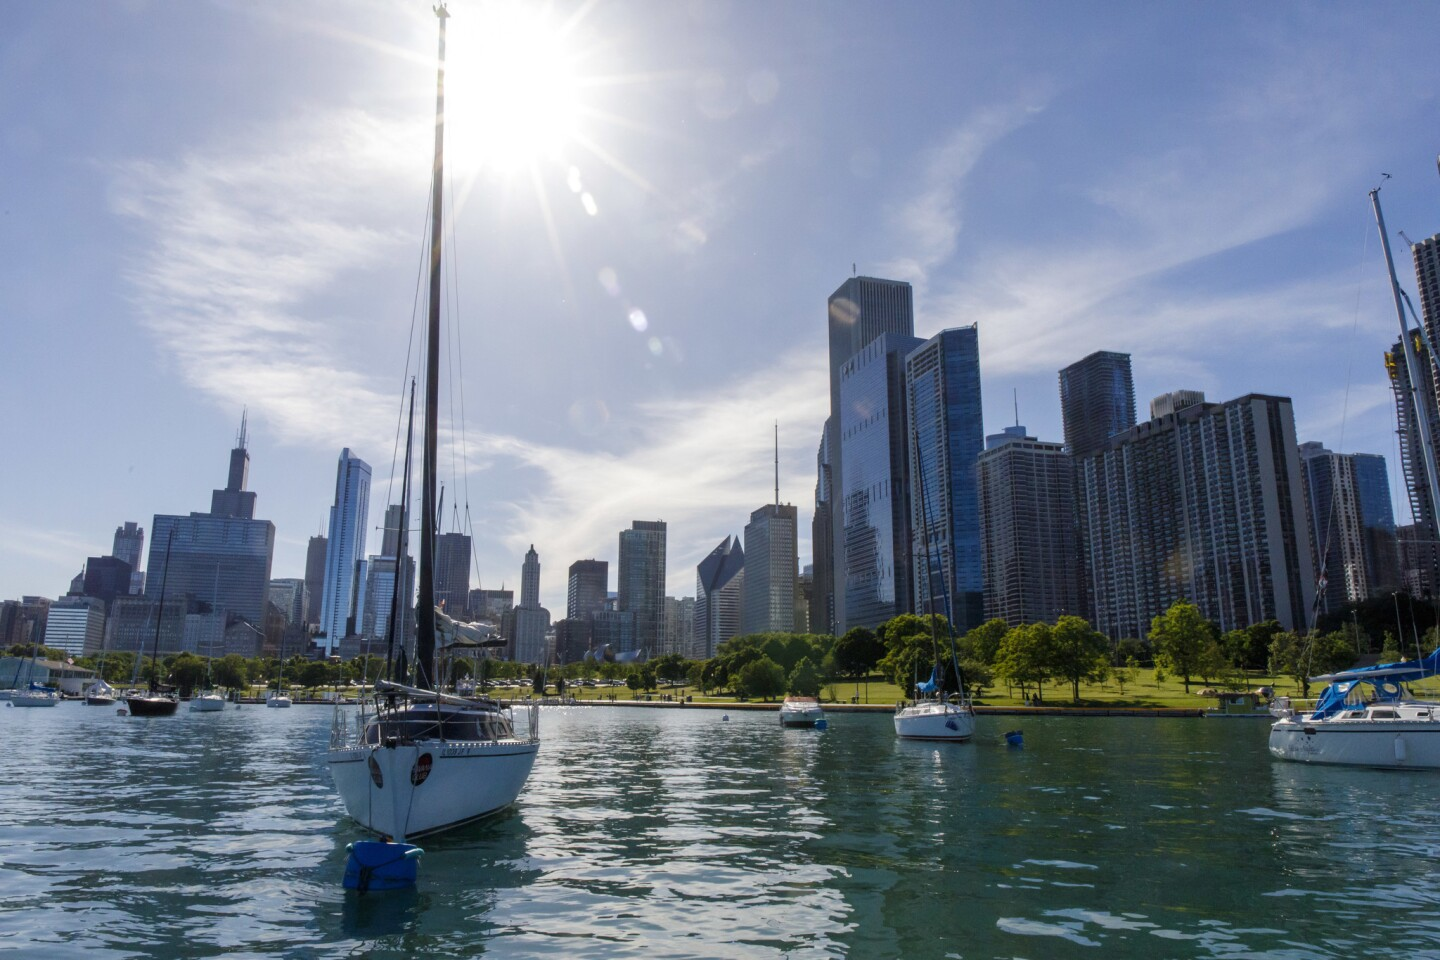 MagnifyMoney gave Chicago a medical quality and cost score of 31.7 out of 100. By comparison, the highest-ranked city to spend retirement, Portland, Ore., received a medical quality and cost score of 79.8.